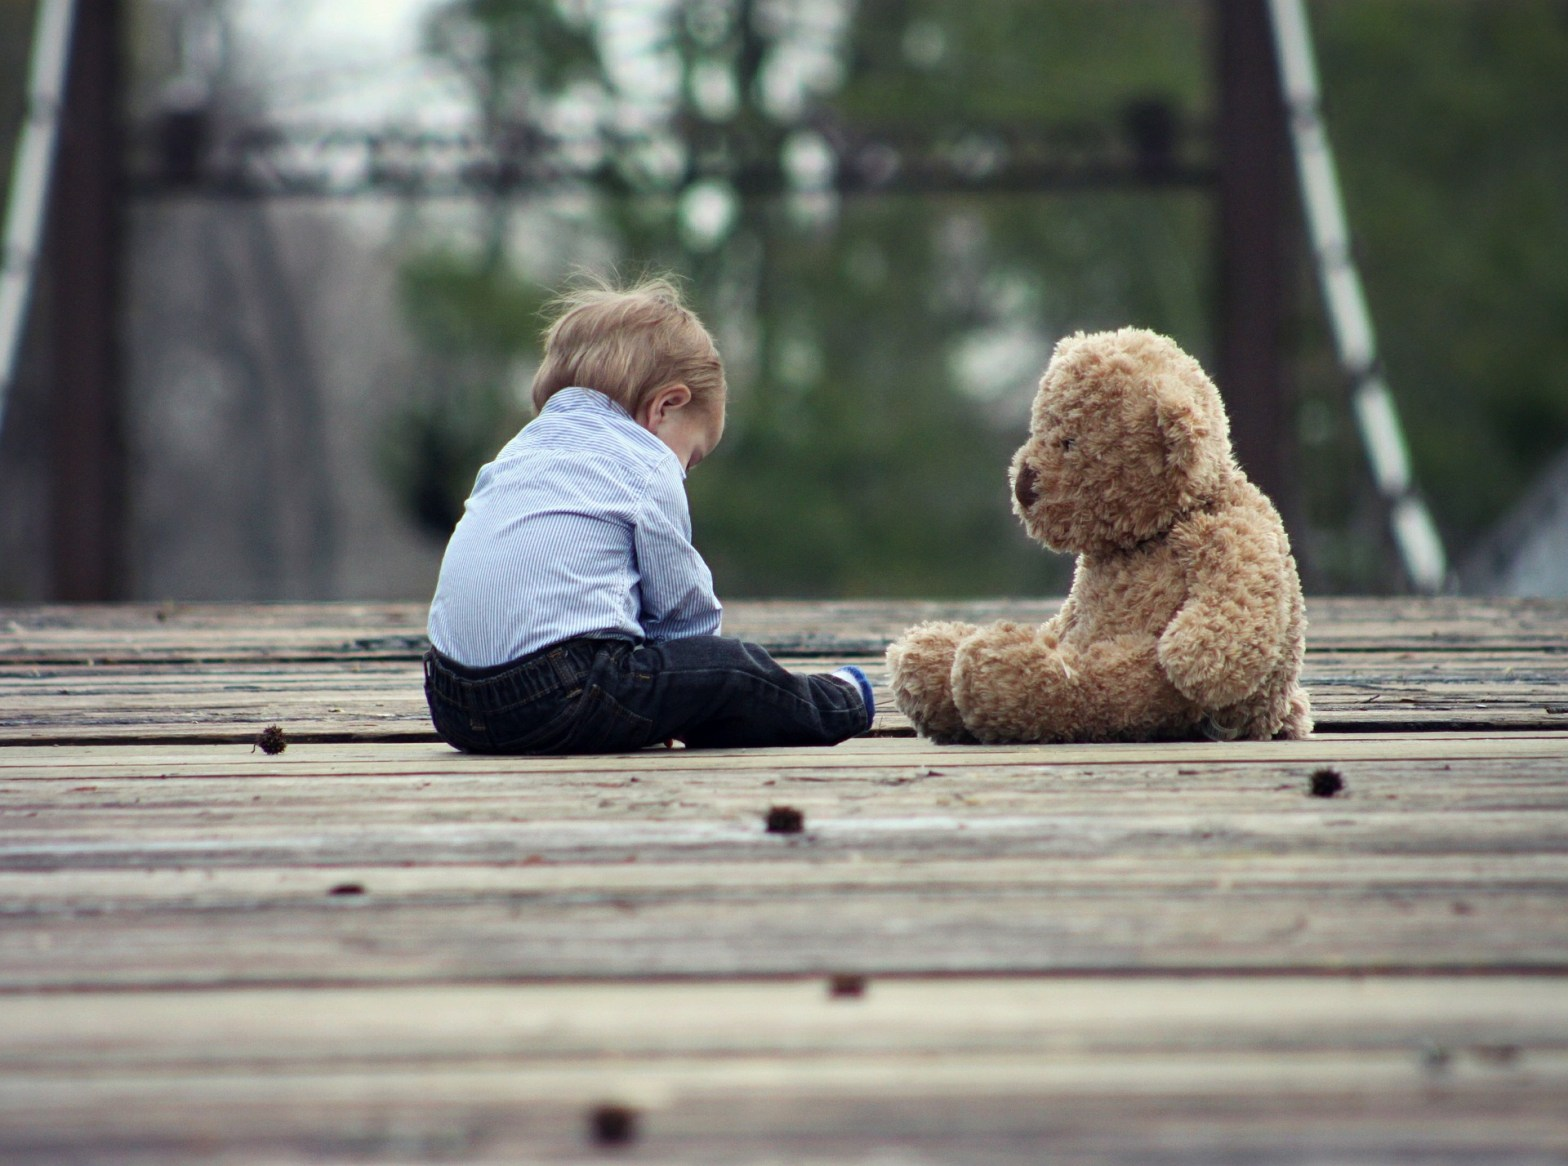 toddler and teddy bear